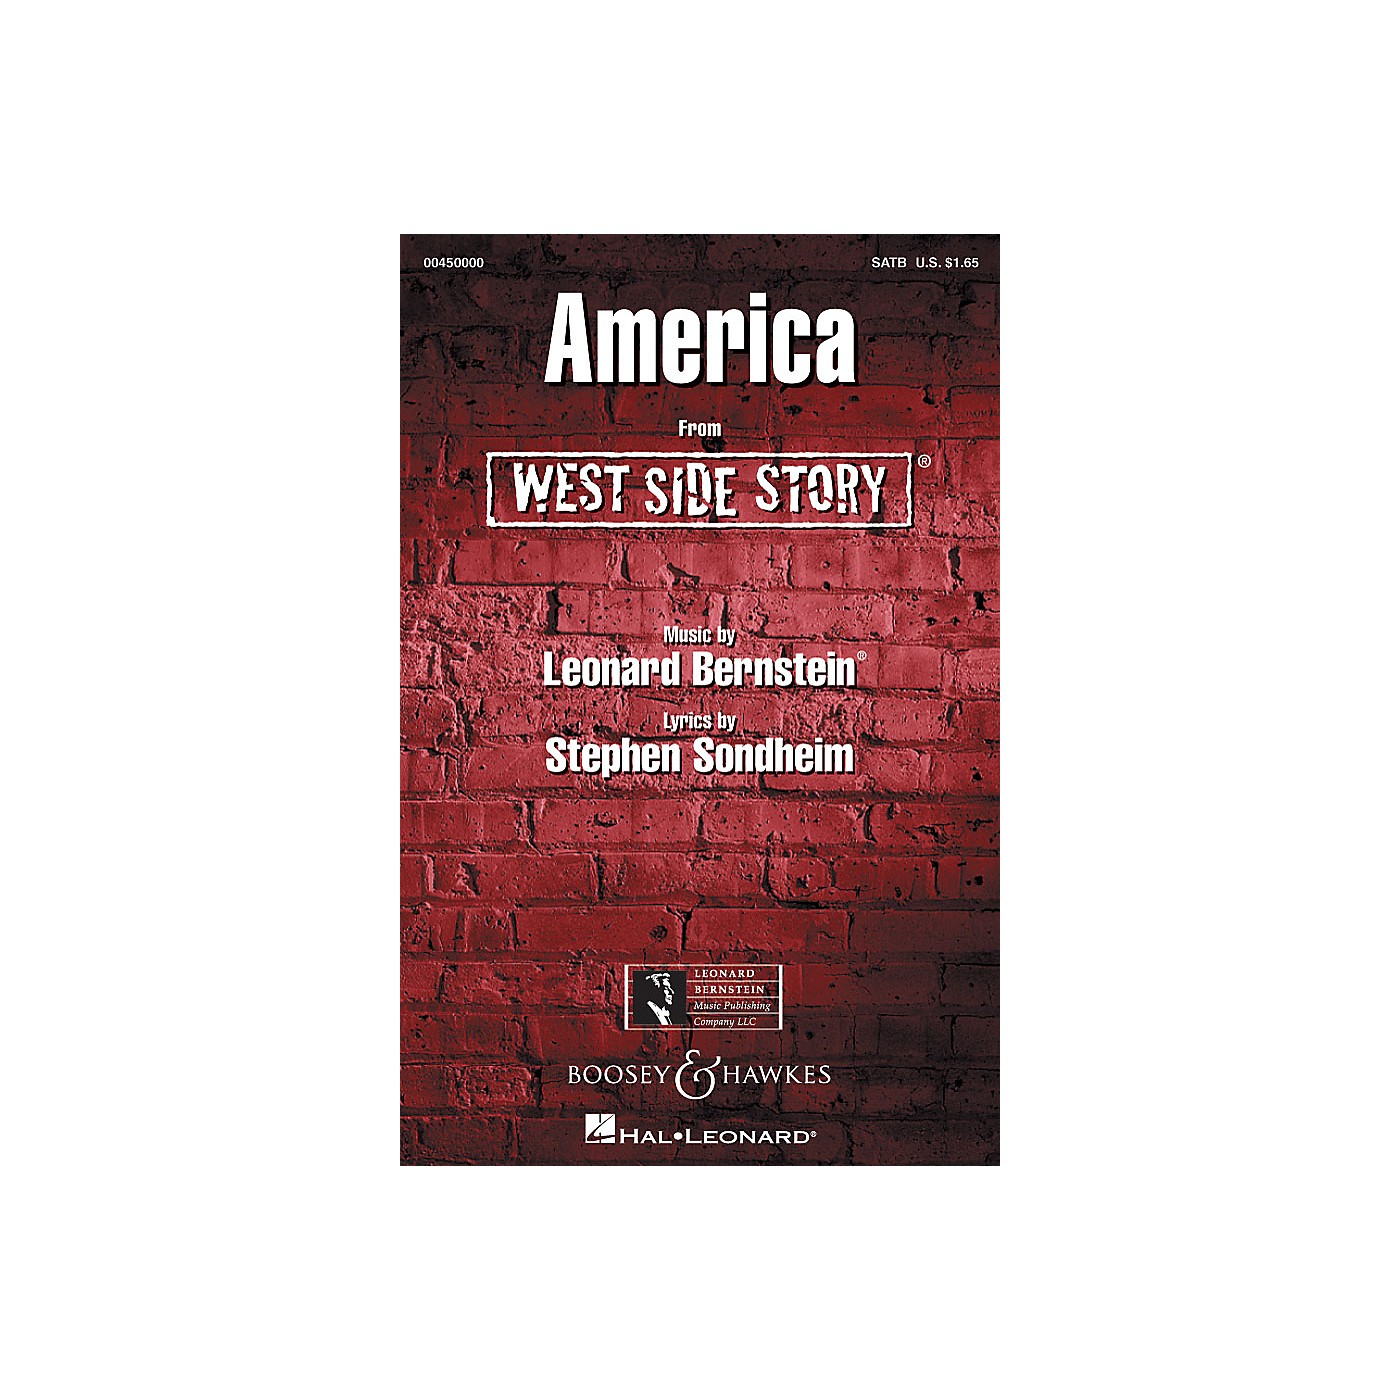 Hal Leonard America (from West Side Story) (SATB) SATB Arranged by William Stickles thumbnail